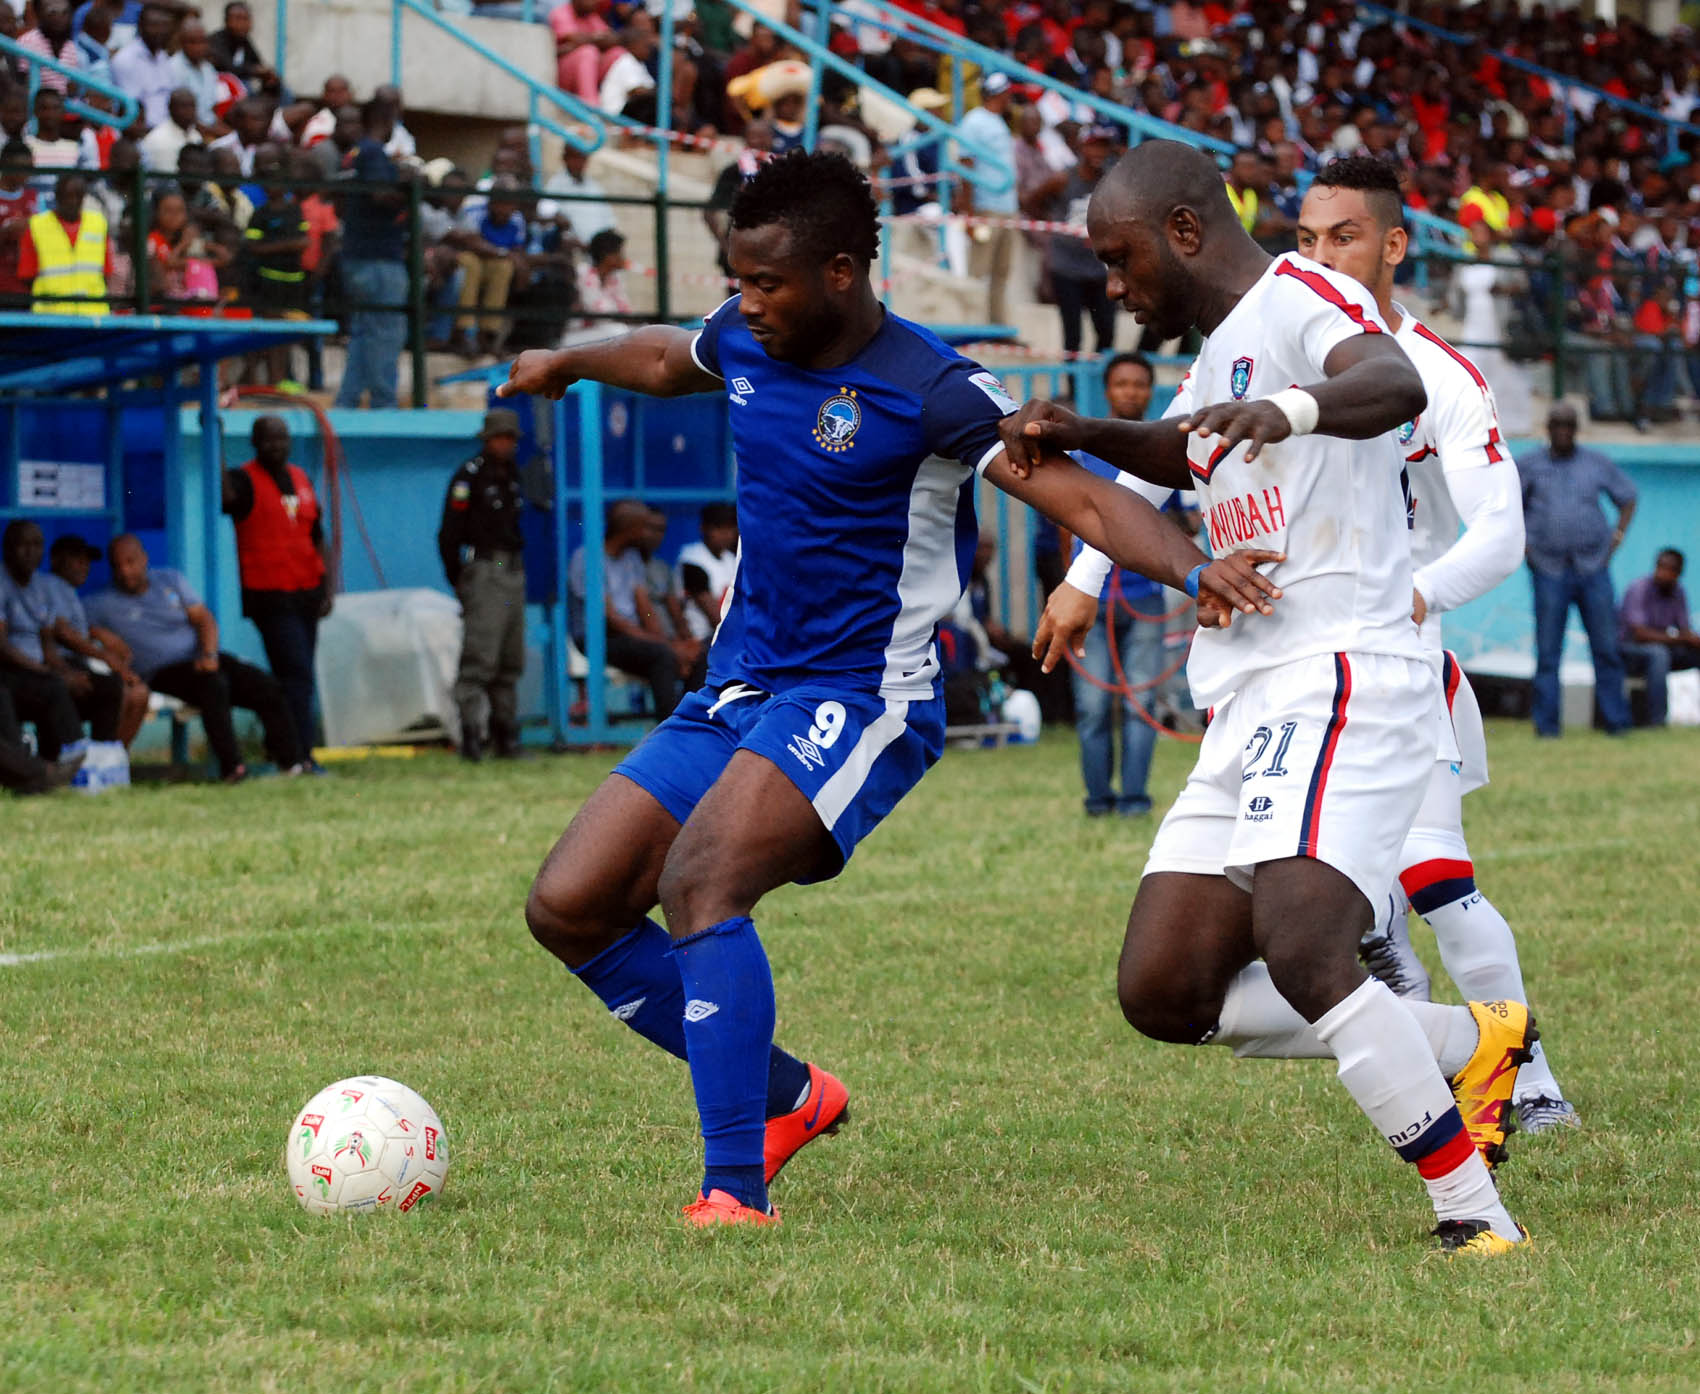 Federation Cup: IfeanyiUbah Beat Crown, Reach Final Amid Controversy